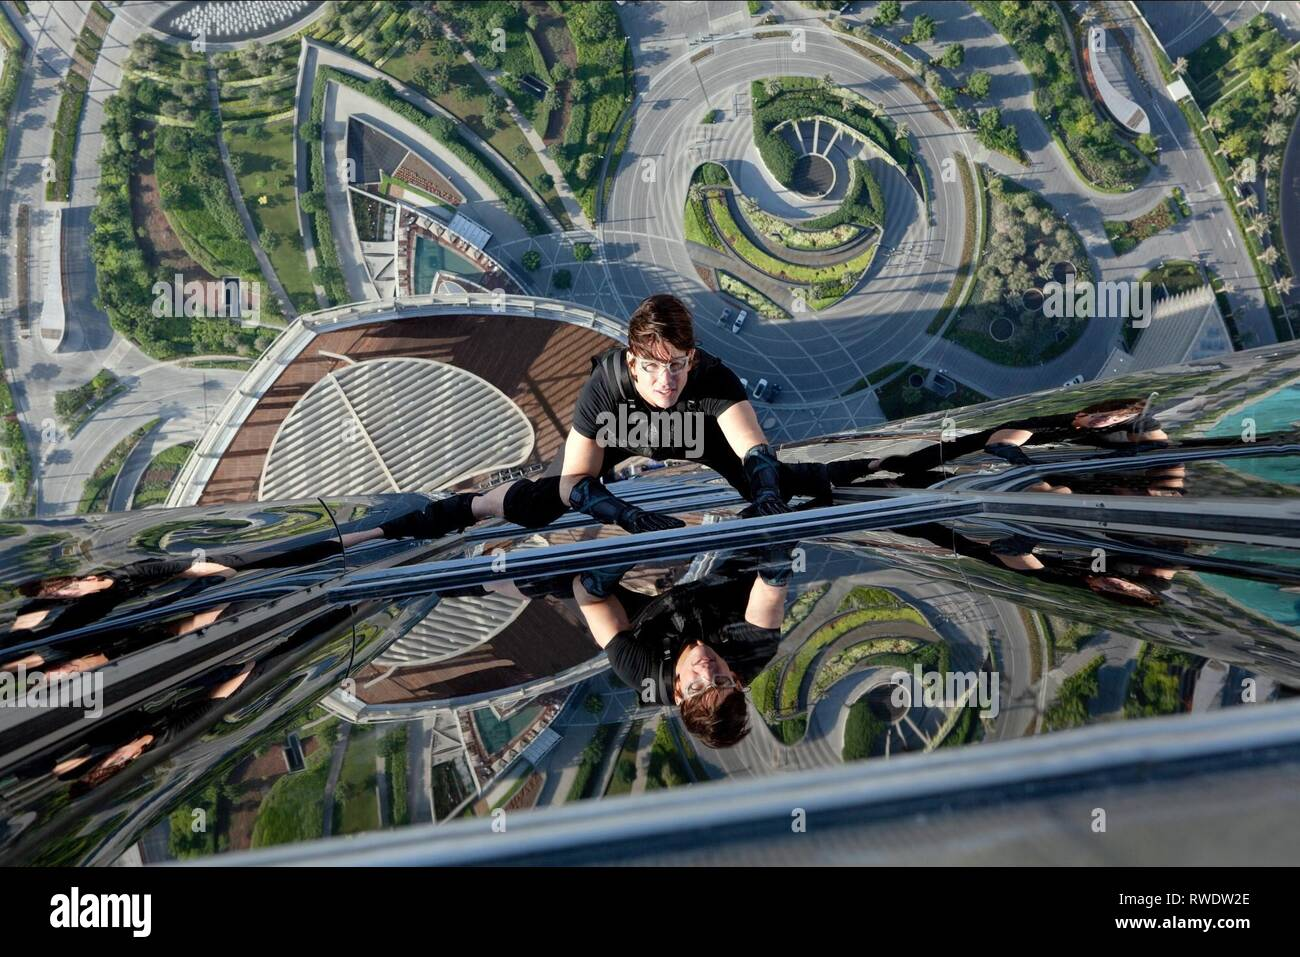 TOM CRUISE, MISSION: IMPOSSIBLE - GHOST PROTOCOL, 2011 - Stock Image